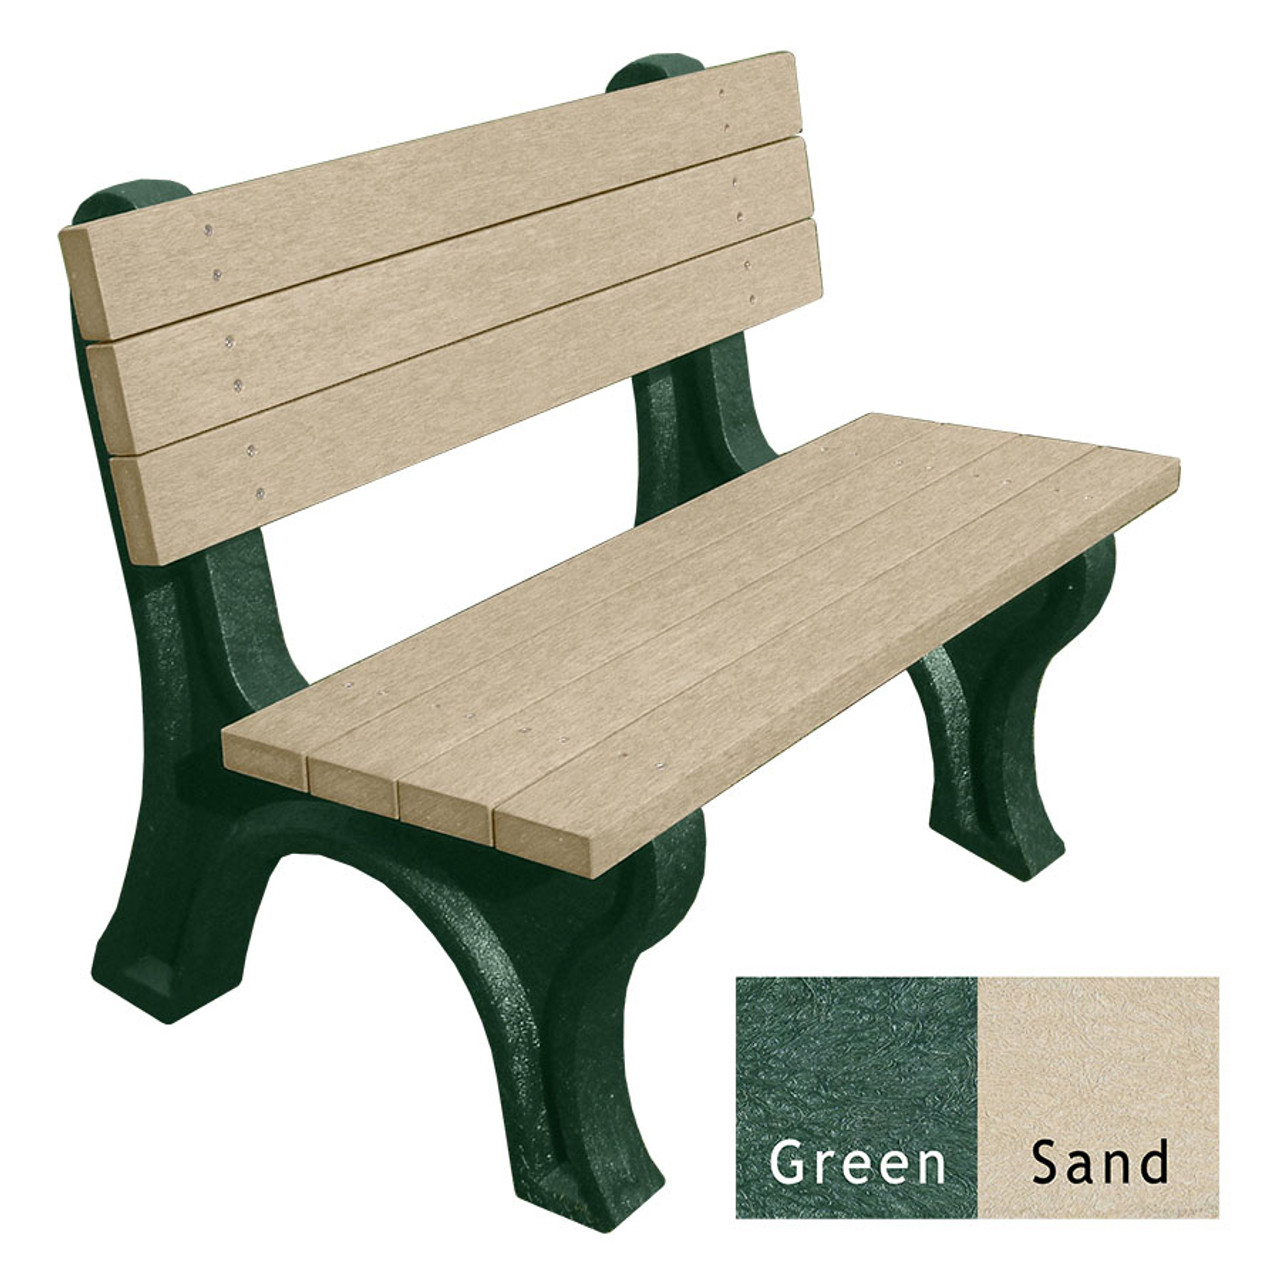 Deluxe Bench 4 Ft. Engraved Recycled Plastic Bench w/Arms